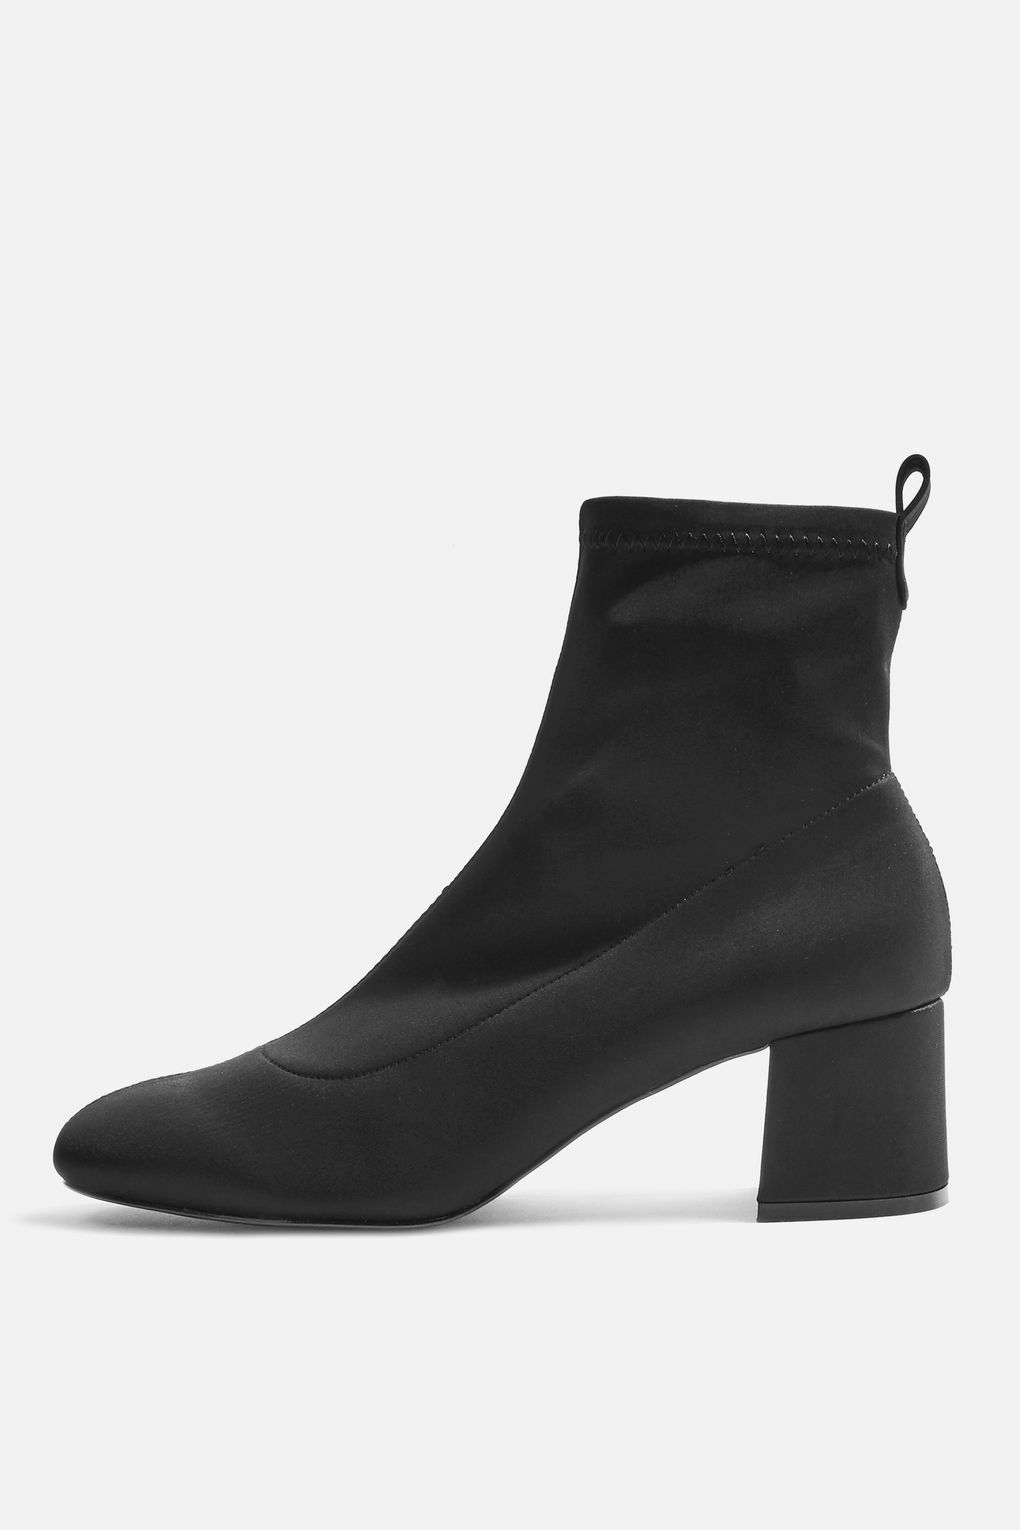 New TOPSHOP 'buttercup' black ankle ankle ankle sock boots uk 3 eu 36 us 5.5 e31a6f